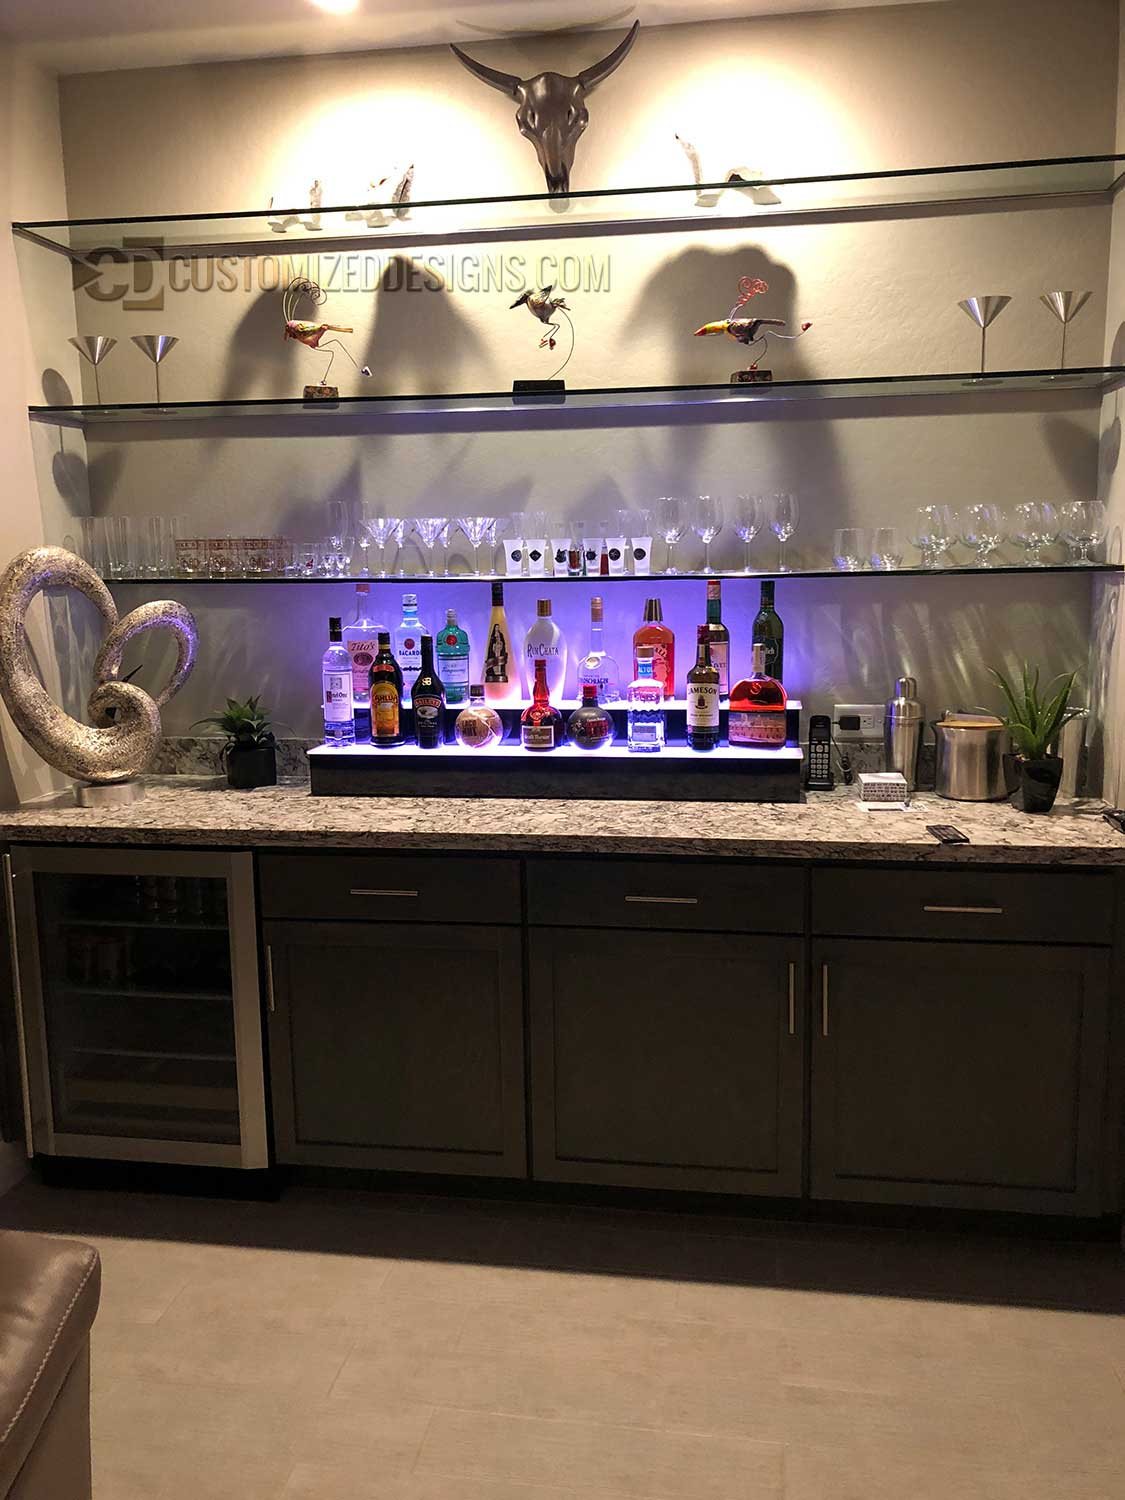 2 Step Home Bar Bottle Display w/ Glass Shelving